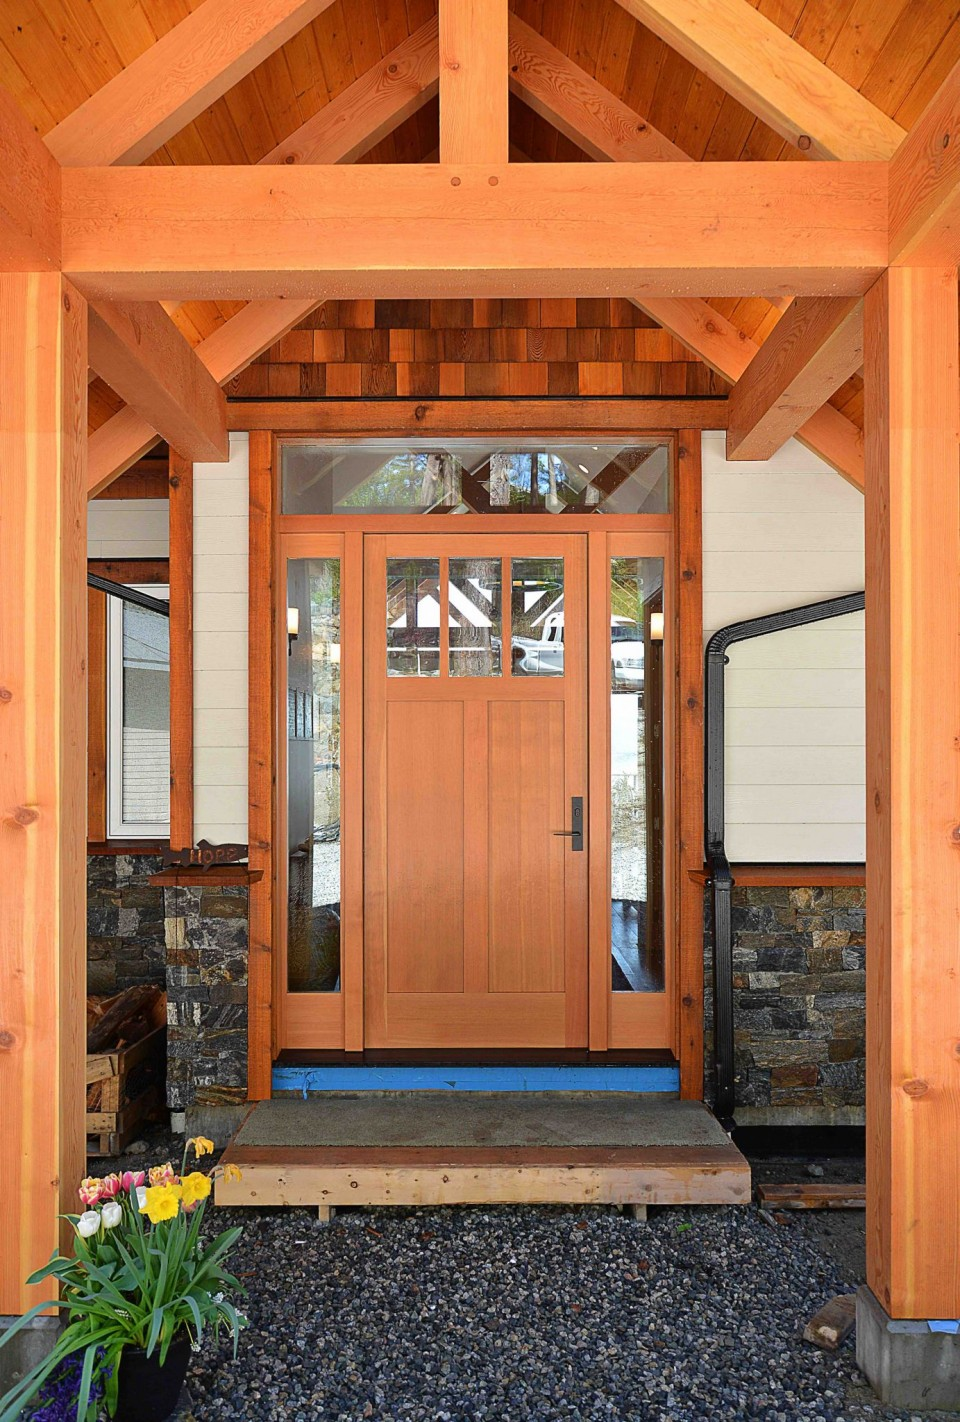 The wood door of a timber frame home